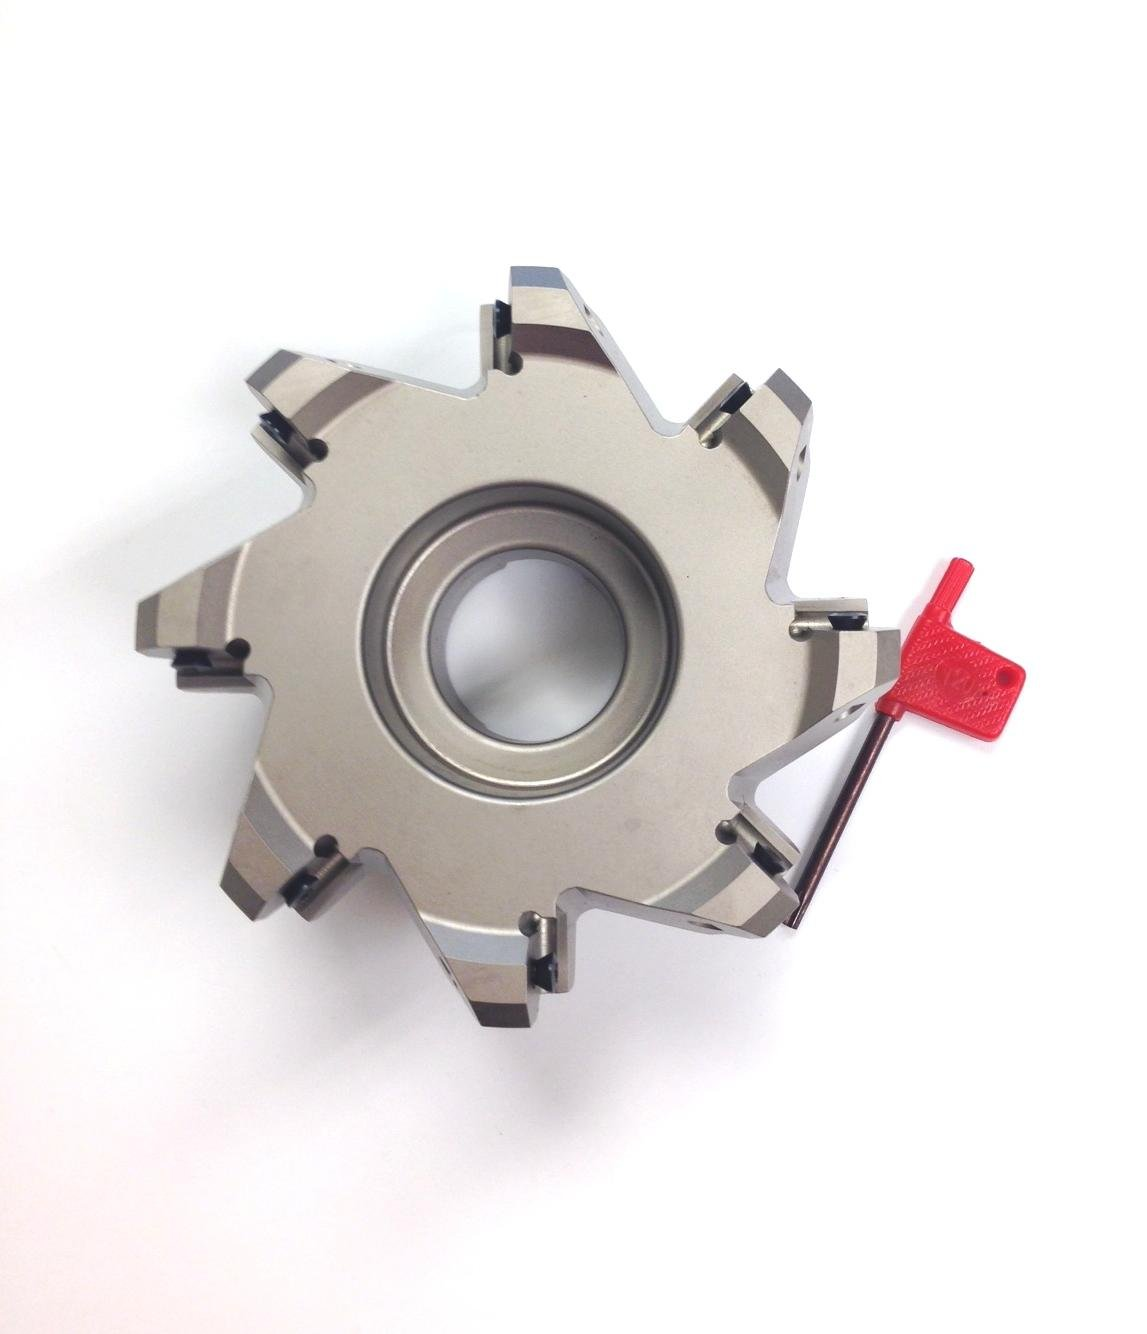 HHIP 2068-5000 5'' x 1-1/2'' Bore 45 Degree Octagon 8 Insert Index able Face Mill, 2-1/2'' OAL